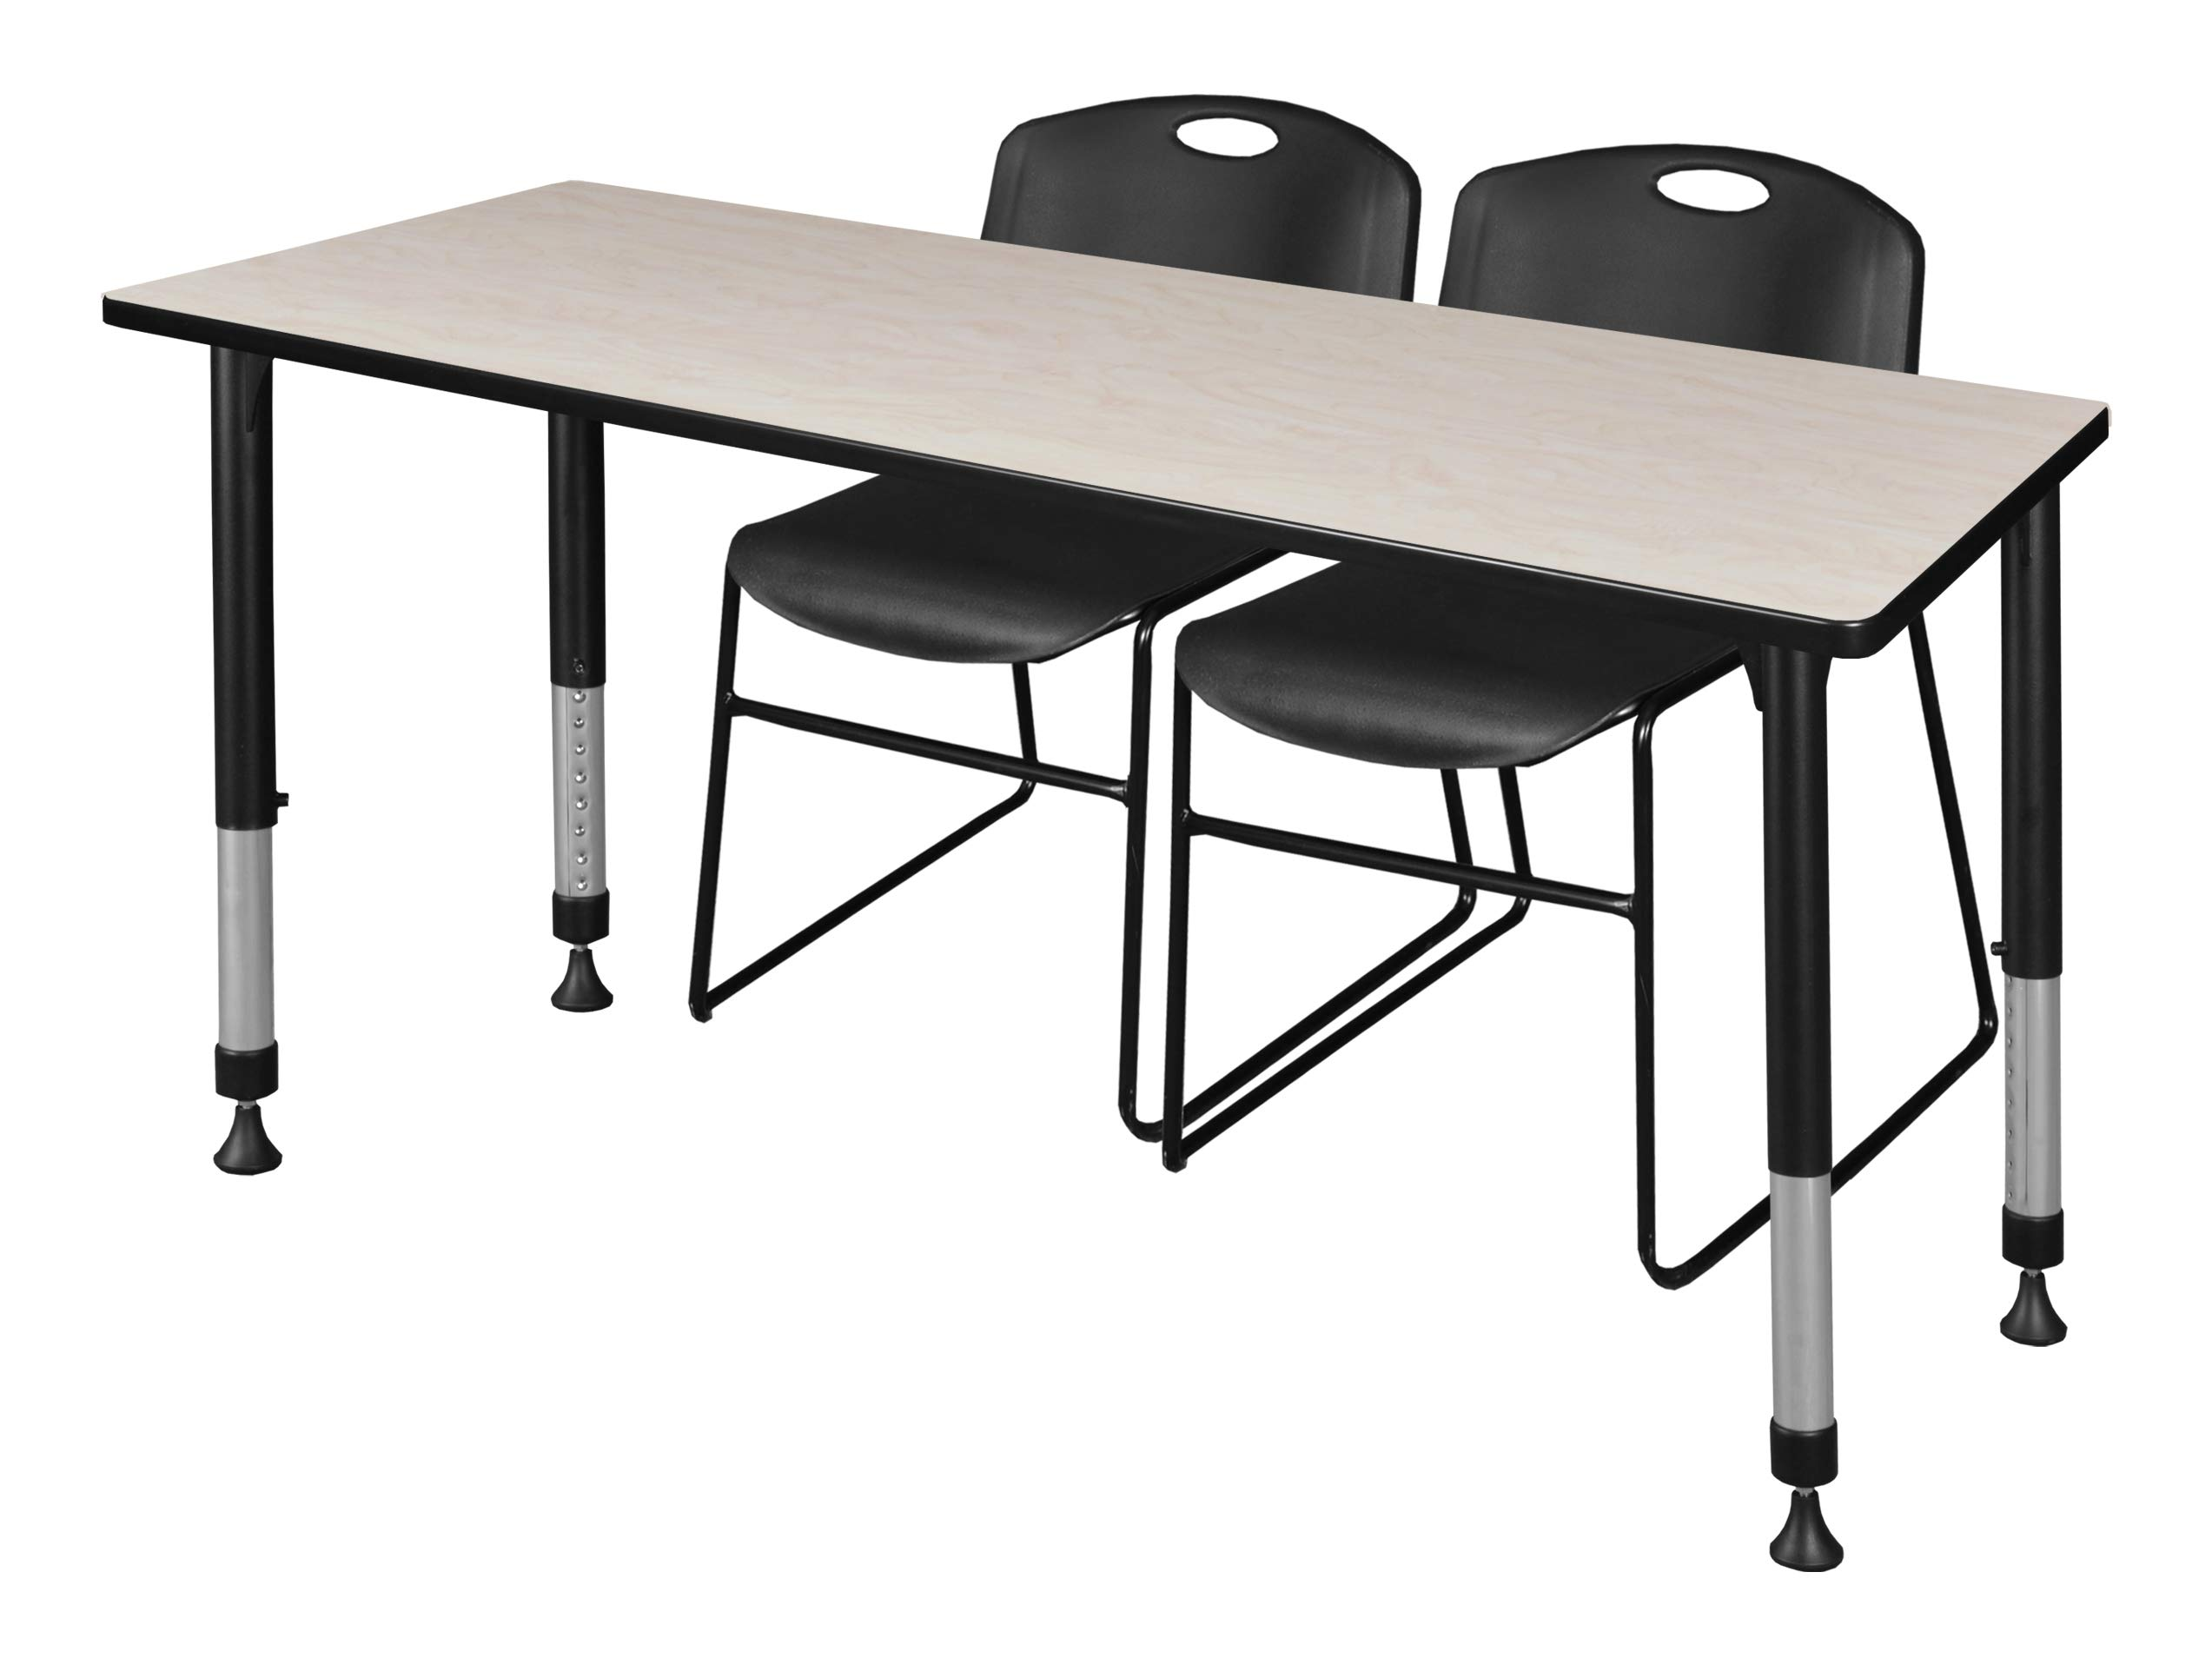 Regency MT6624PLAPBK44BK Kee Height Adjustable Classroom Table Set with Two Zeng Chairs 66'' x 24'' Maple/Black